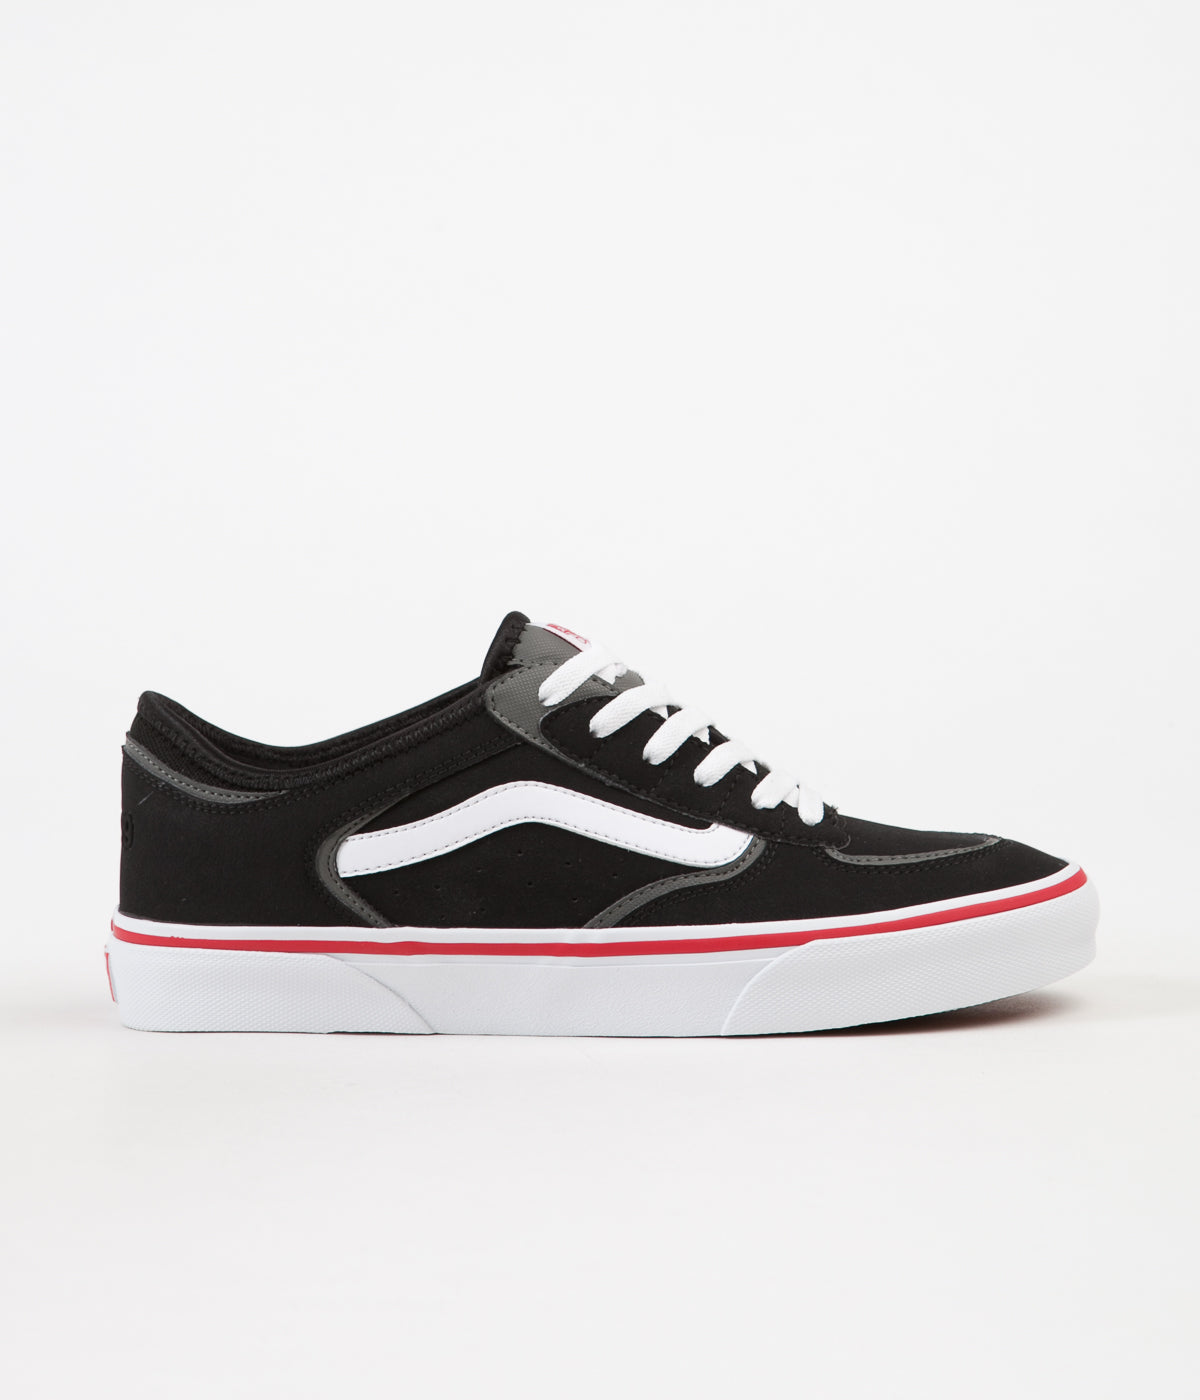 0b1d5350c42 ... Vans Rowley Classic LX Shoes - Black   White   Red ...